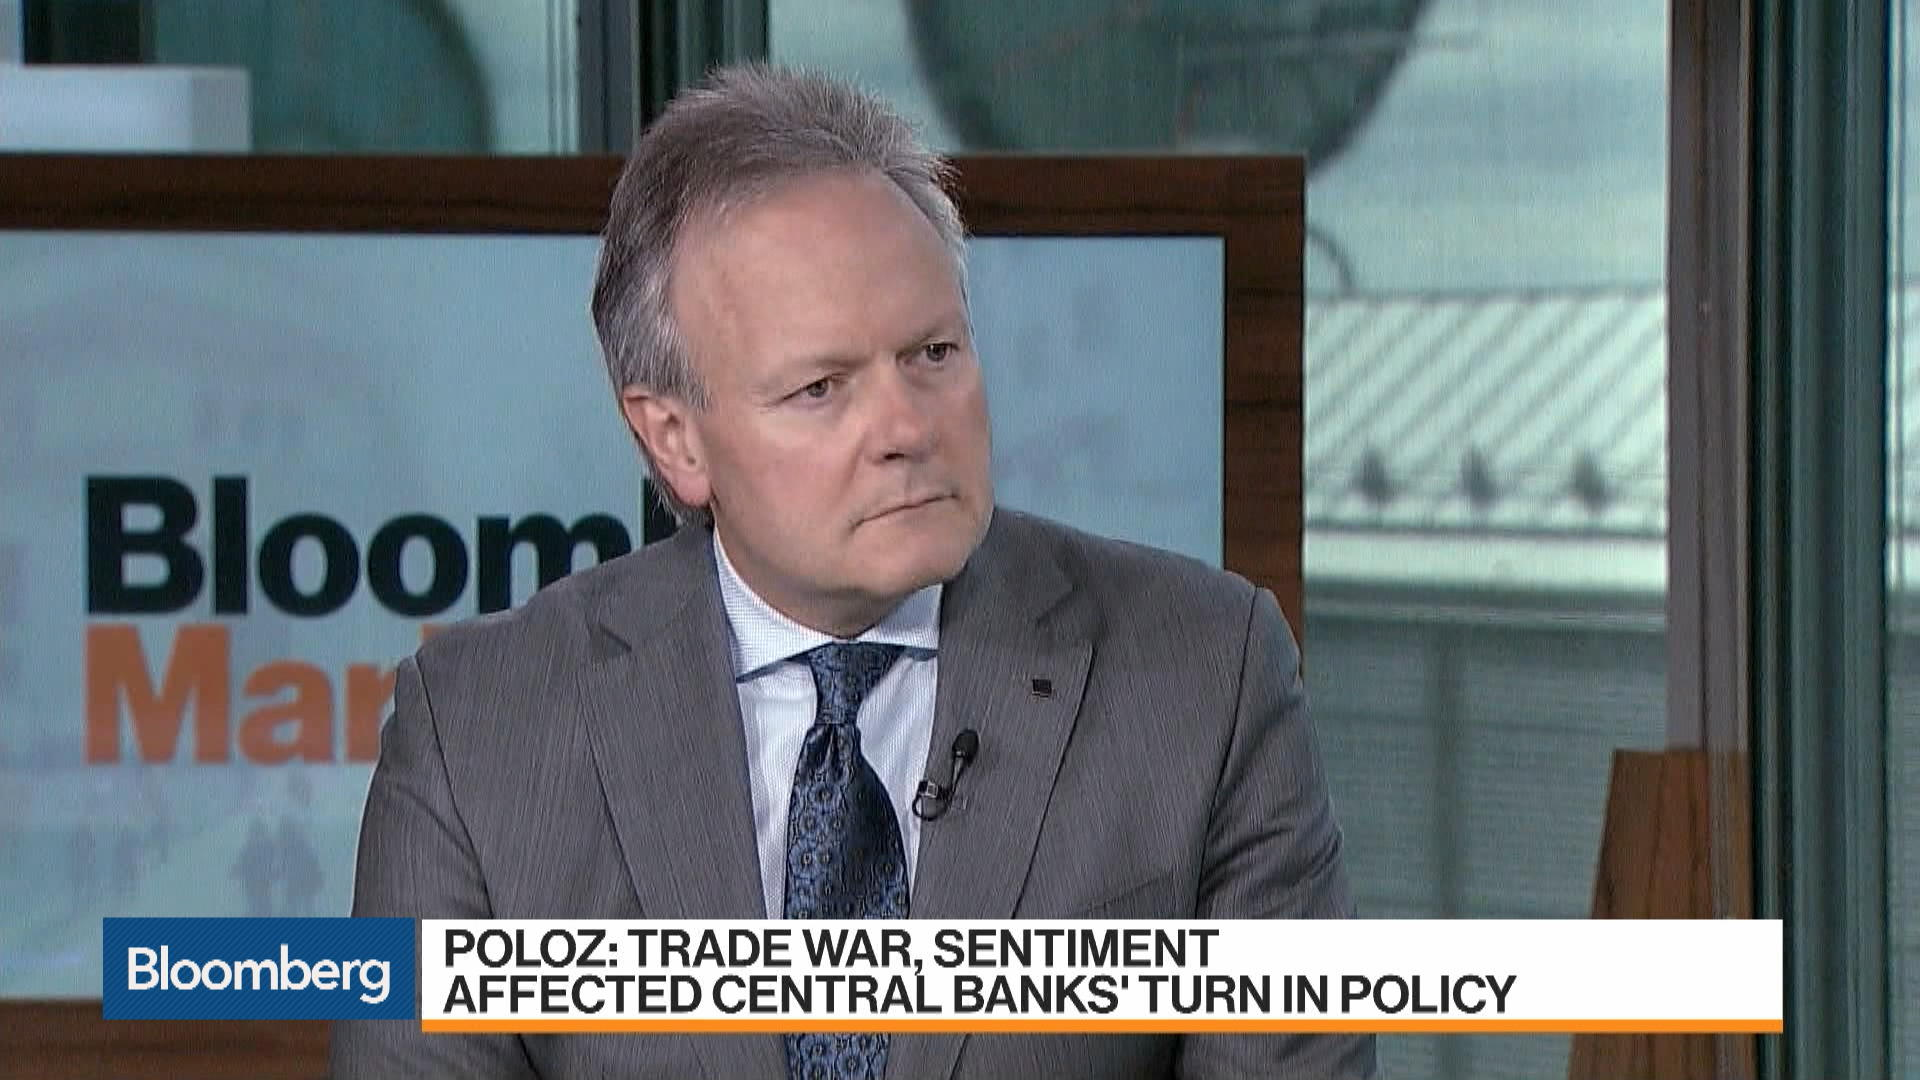 Bank of Canada's Poloz Says Trade War Effects Have Been Modest